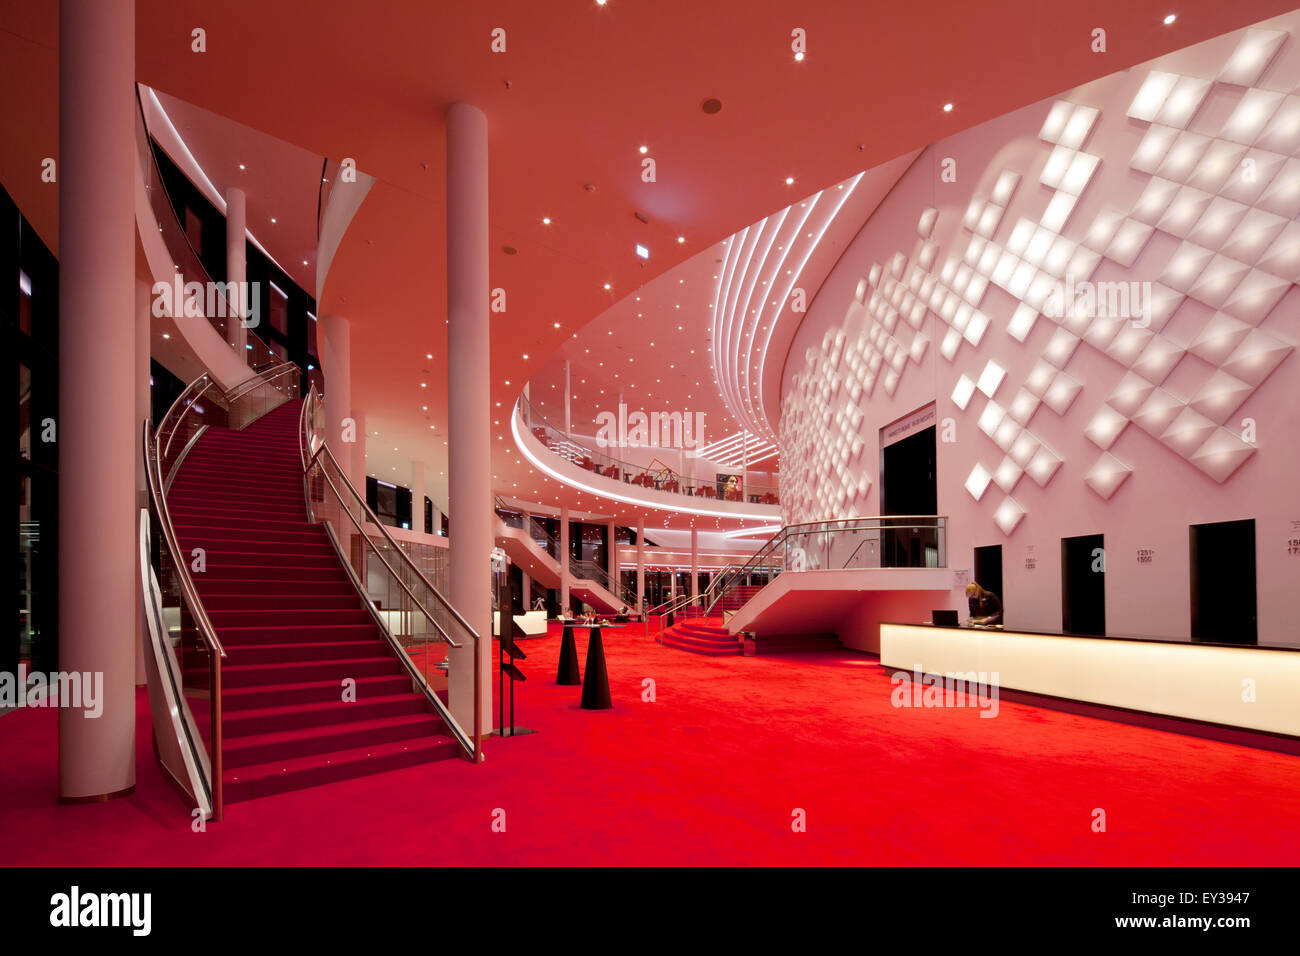 Large foyer on two floors with decorative light installation, Stage Theater an der Elbe, Hamburg, Germany Stock Photo